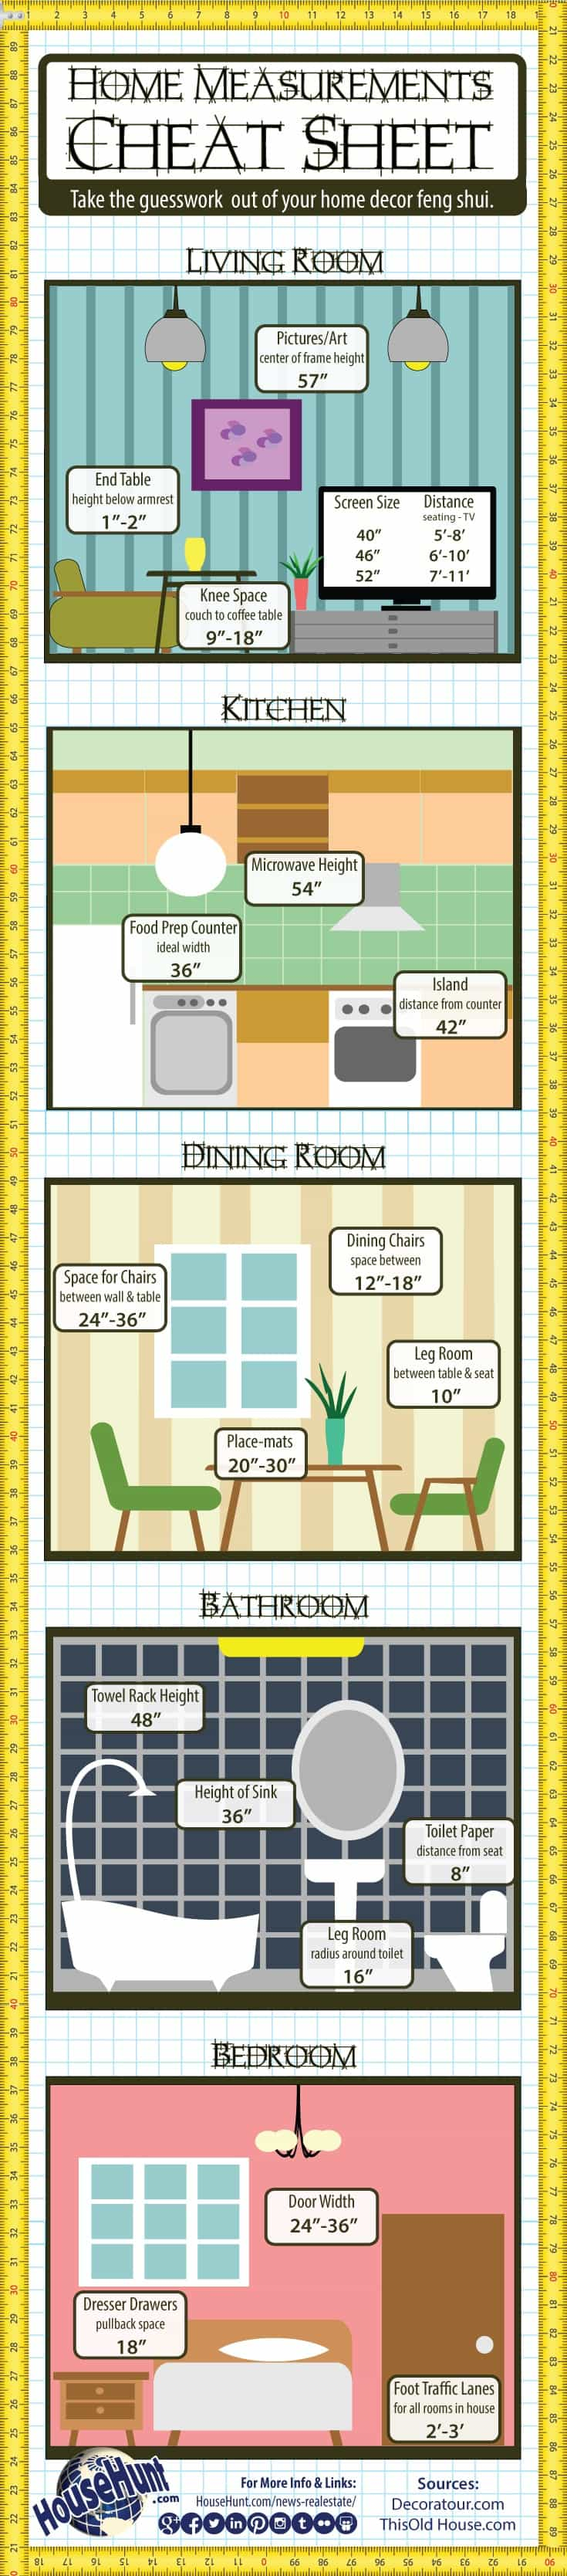 home dimensions measurements cheat sheet